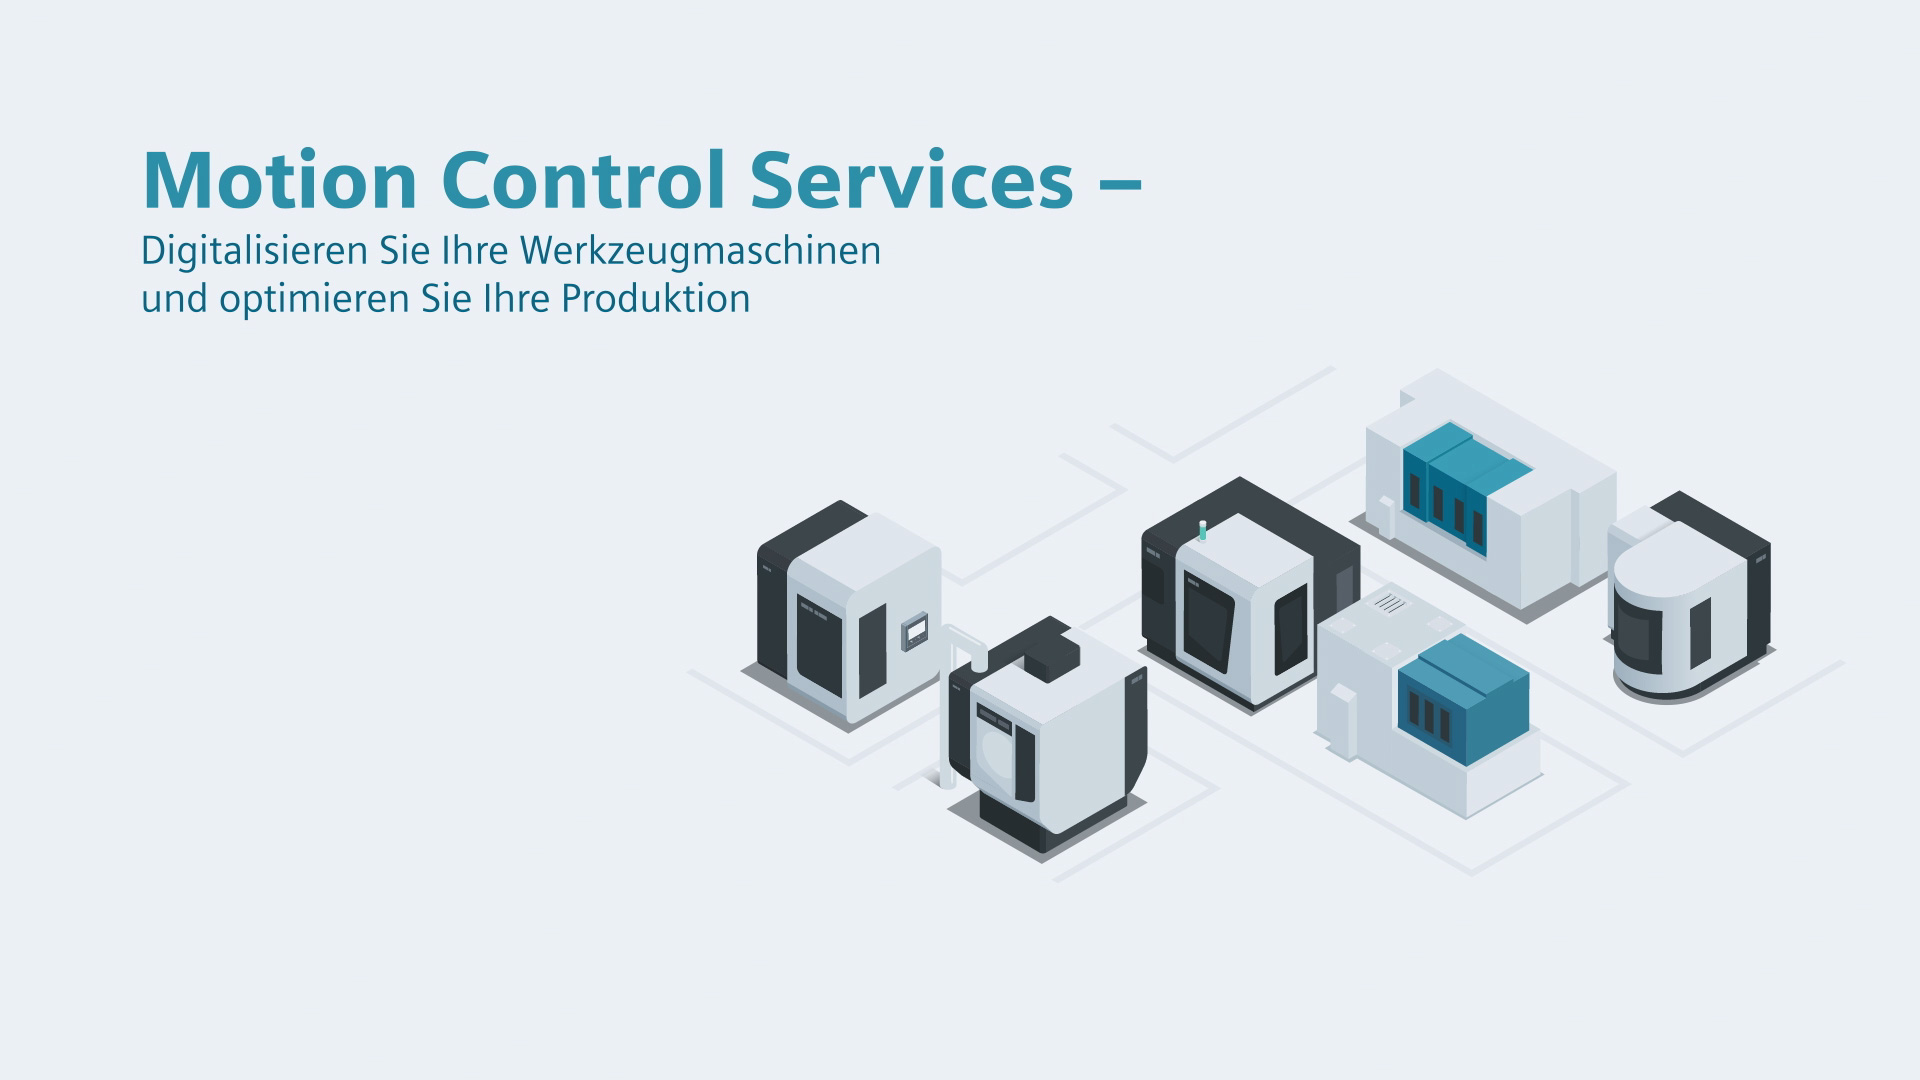 Motion Control Services - Digital Industry Services - Siemens Global ...